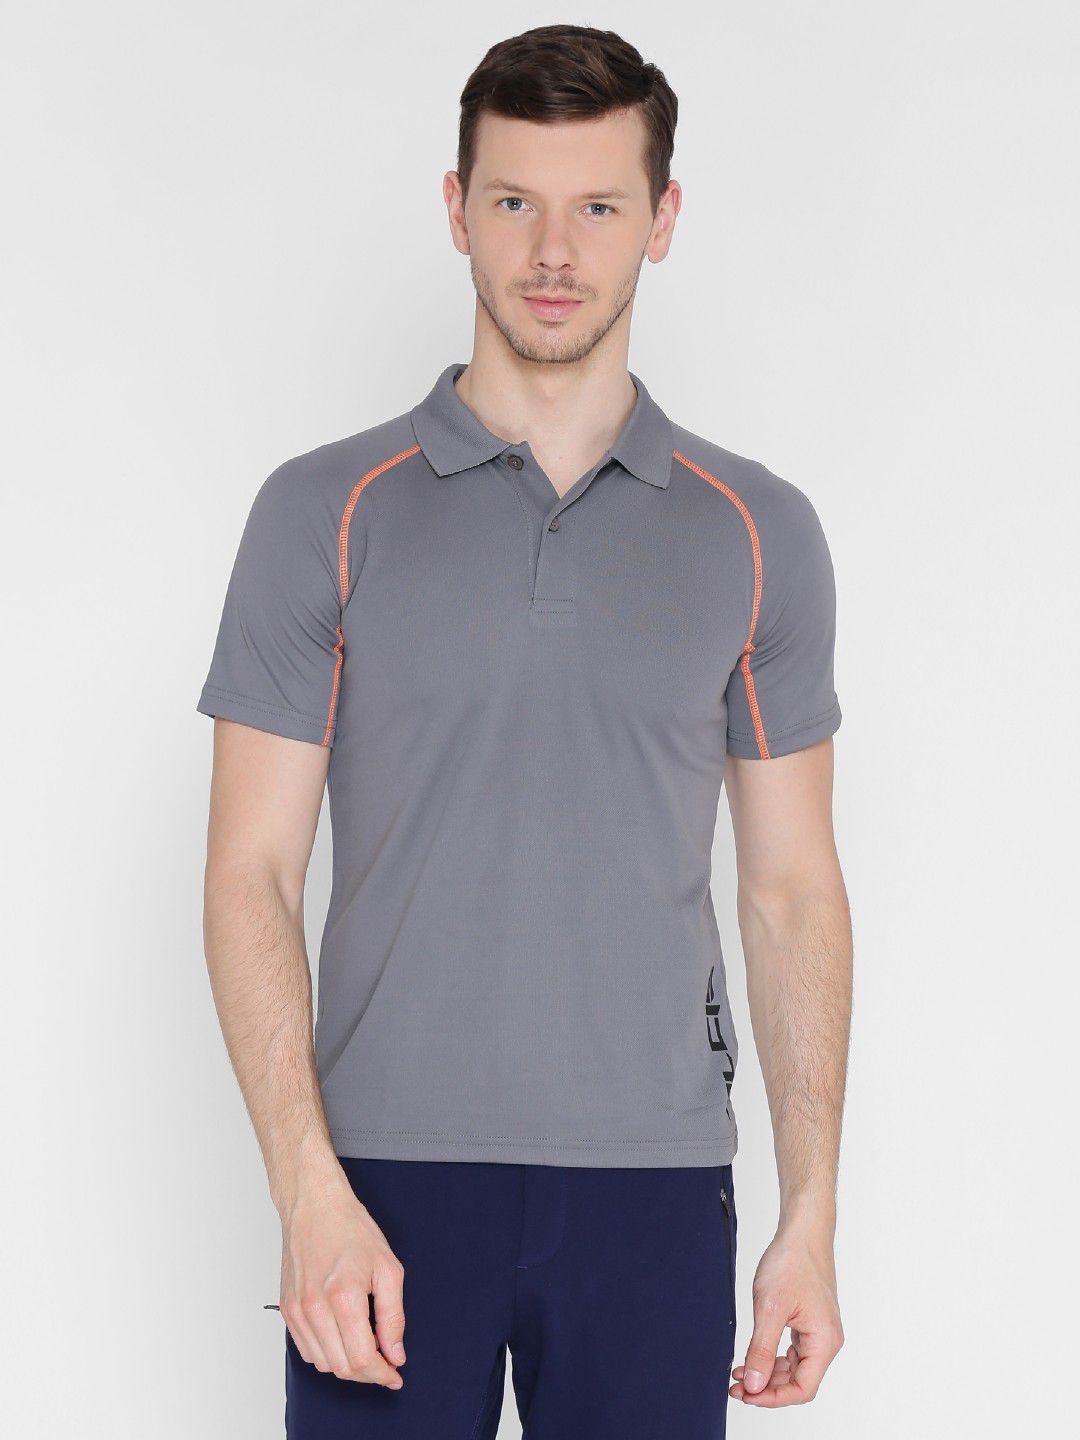 Alcis Mens Solid Grey Polo T-Shirt